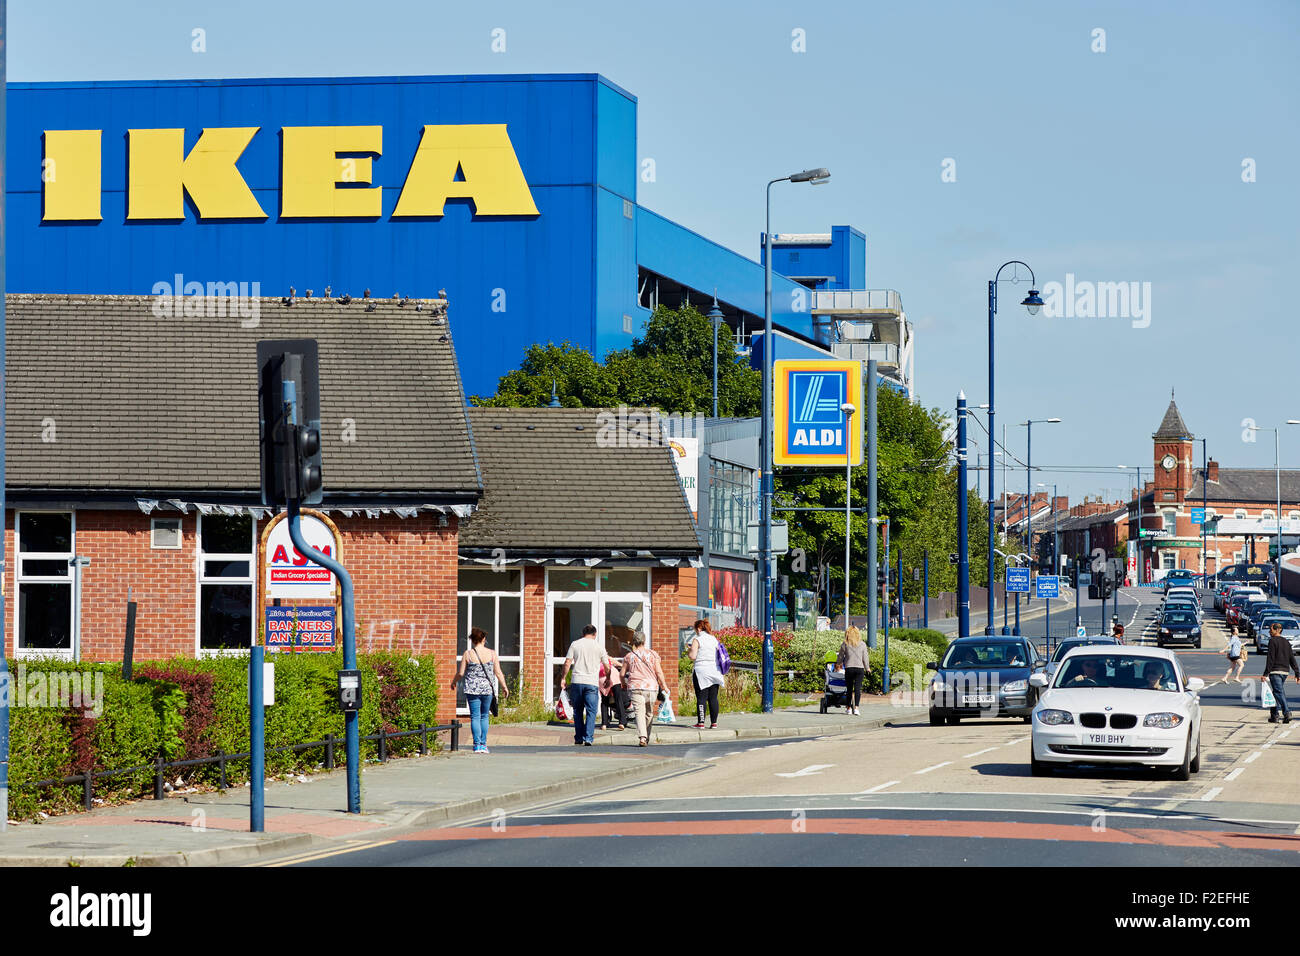 Ikea Furniture Store Exterior On A Sunny Day In Aston Under Lyne Tameside  Gtr Manchester Uk